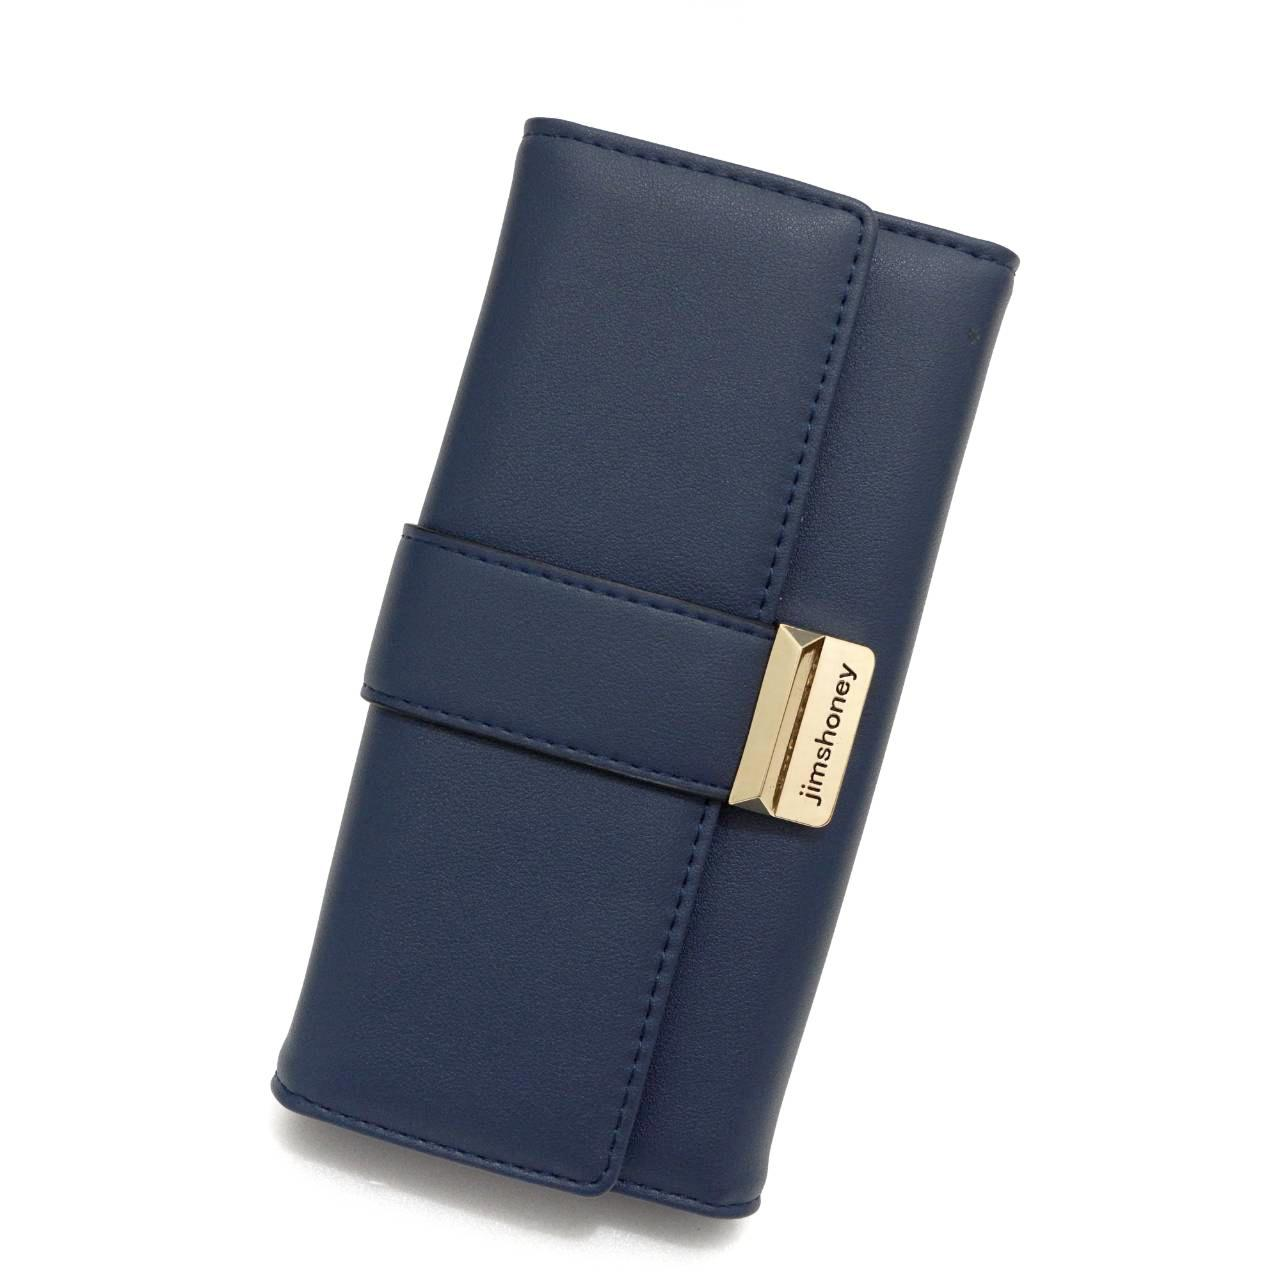 Jims Honey - Dompet Fashion Import - Amour Wallet (Navy)